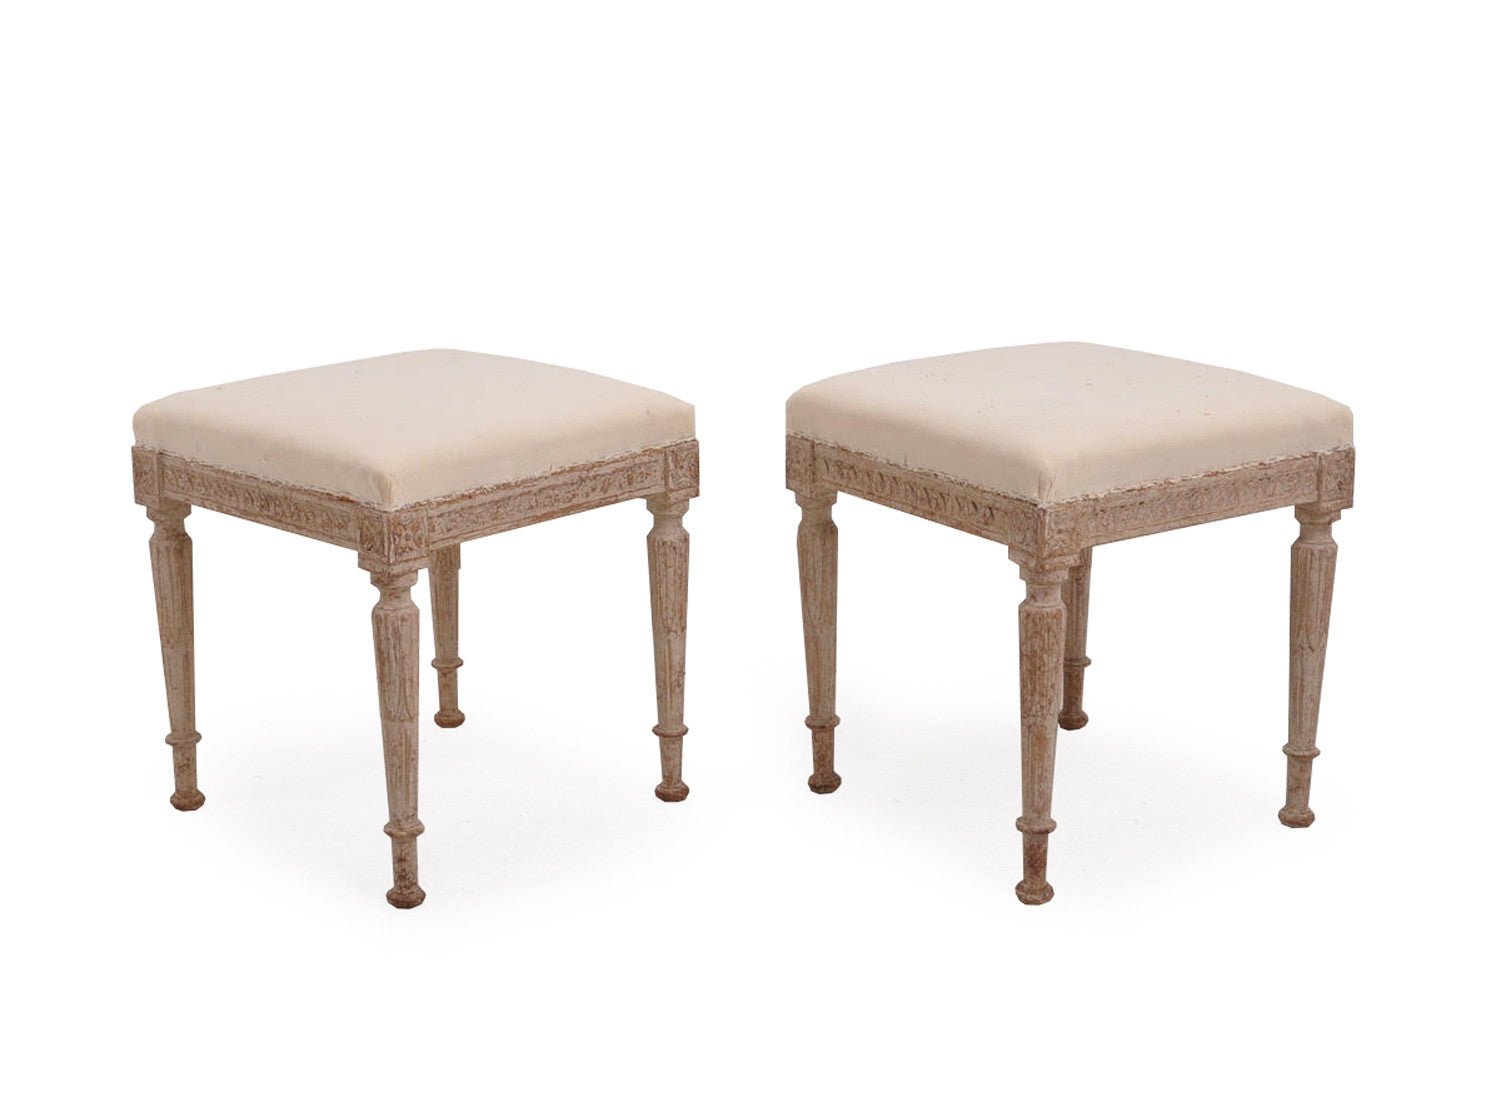 Pair of Late 19th Century Stools